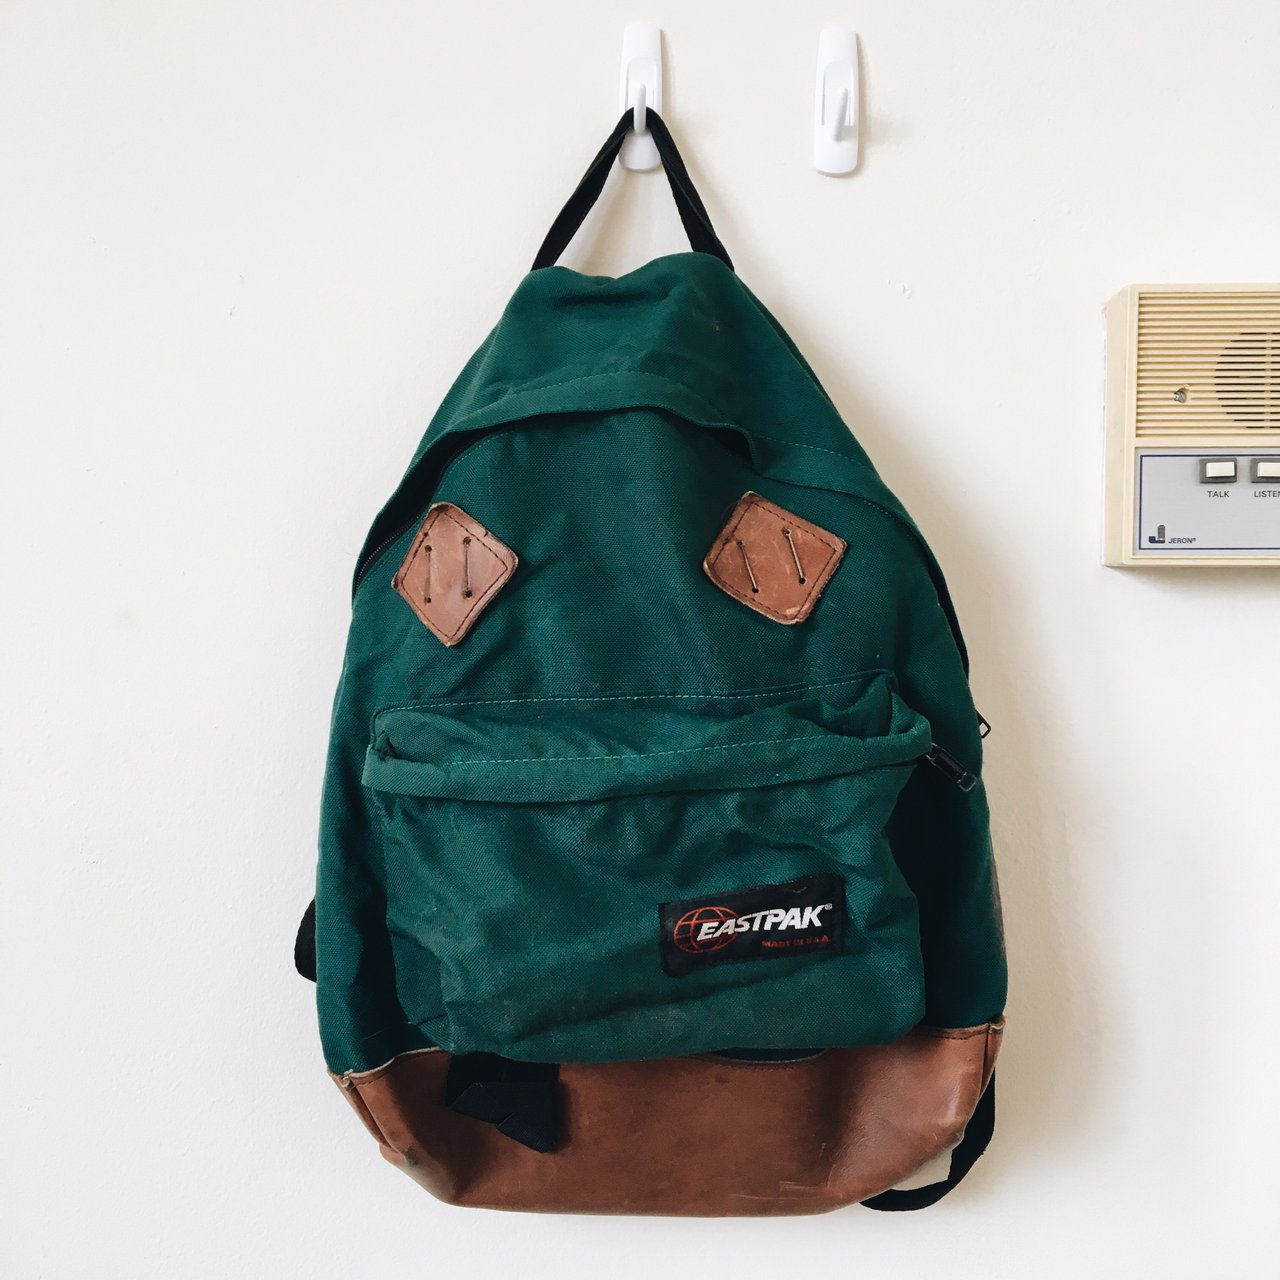 Vintage Backpack! Eastpak. Worn in and well loved but still - Depop